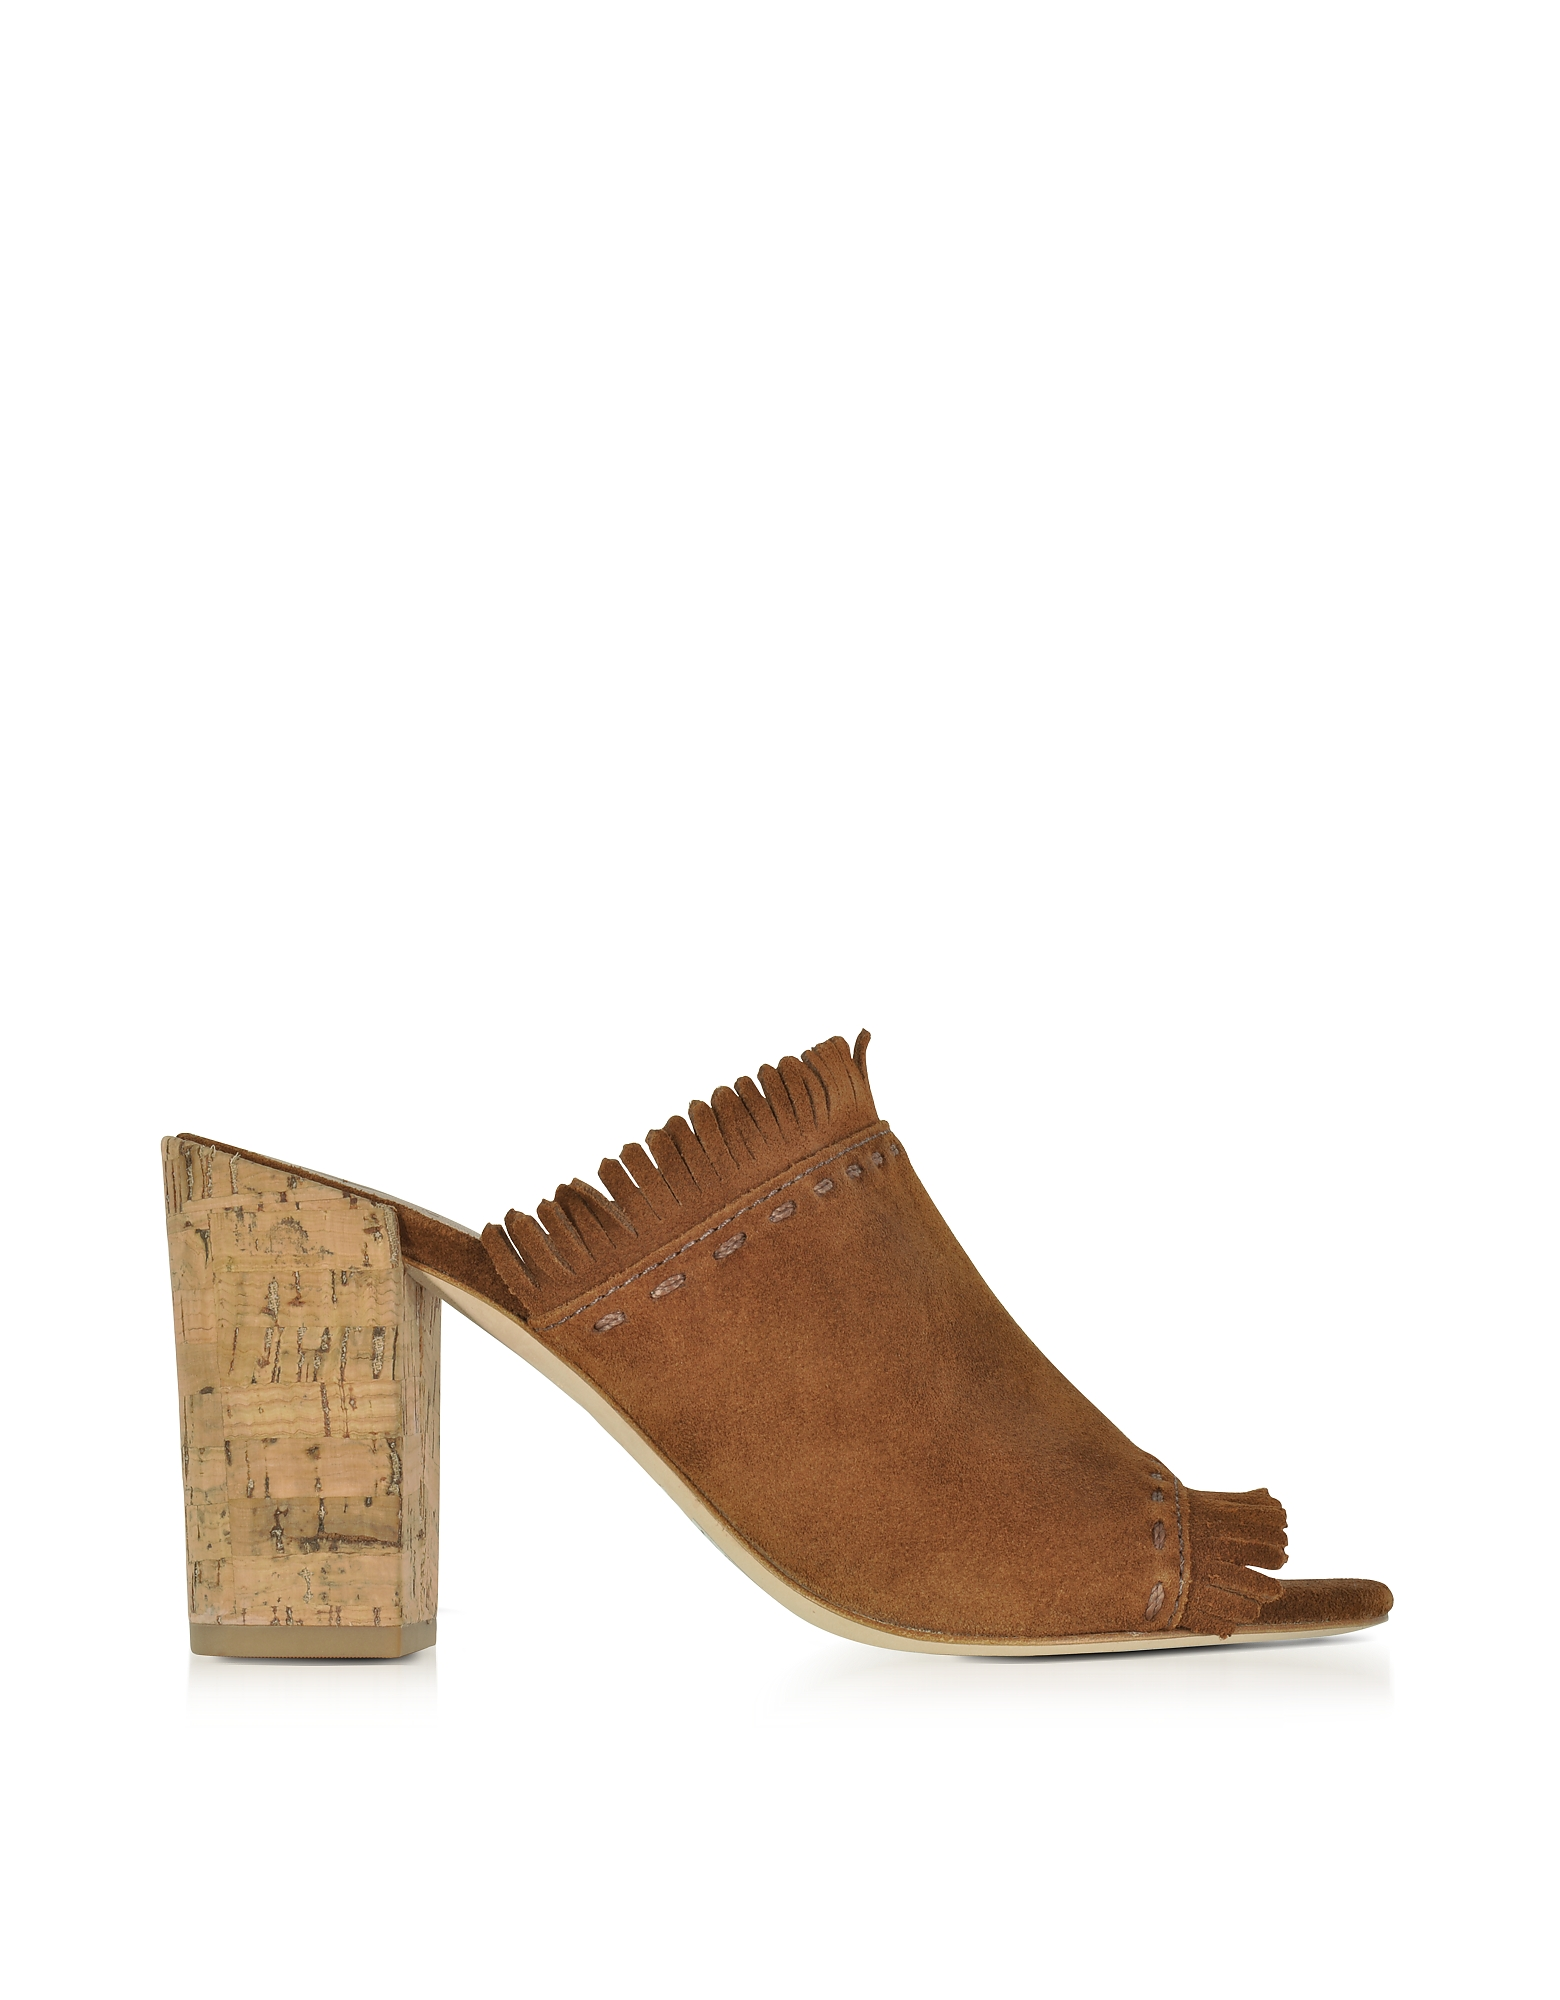 Tory Burch Shoes, Huntington Festival Brown Suede High Heel Mules w/Fringes